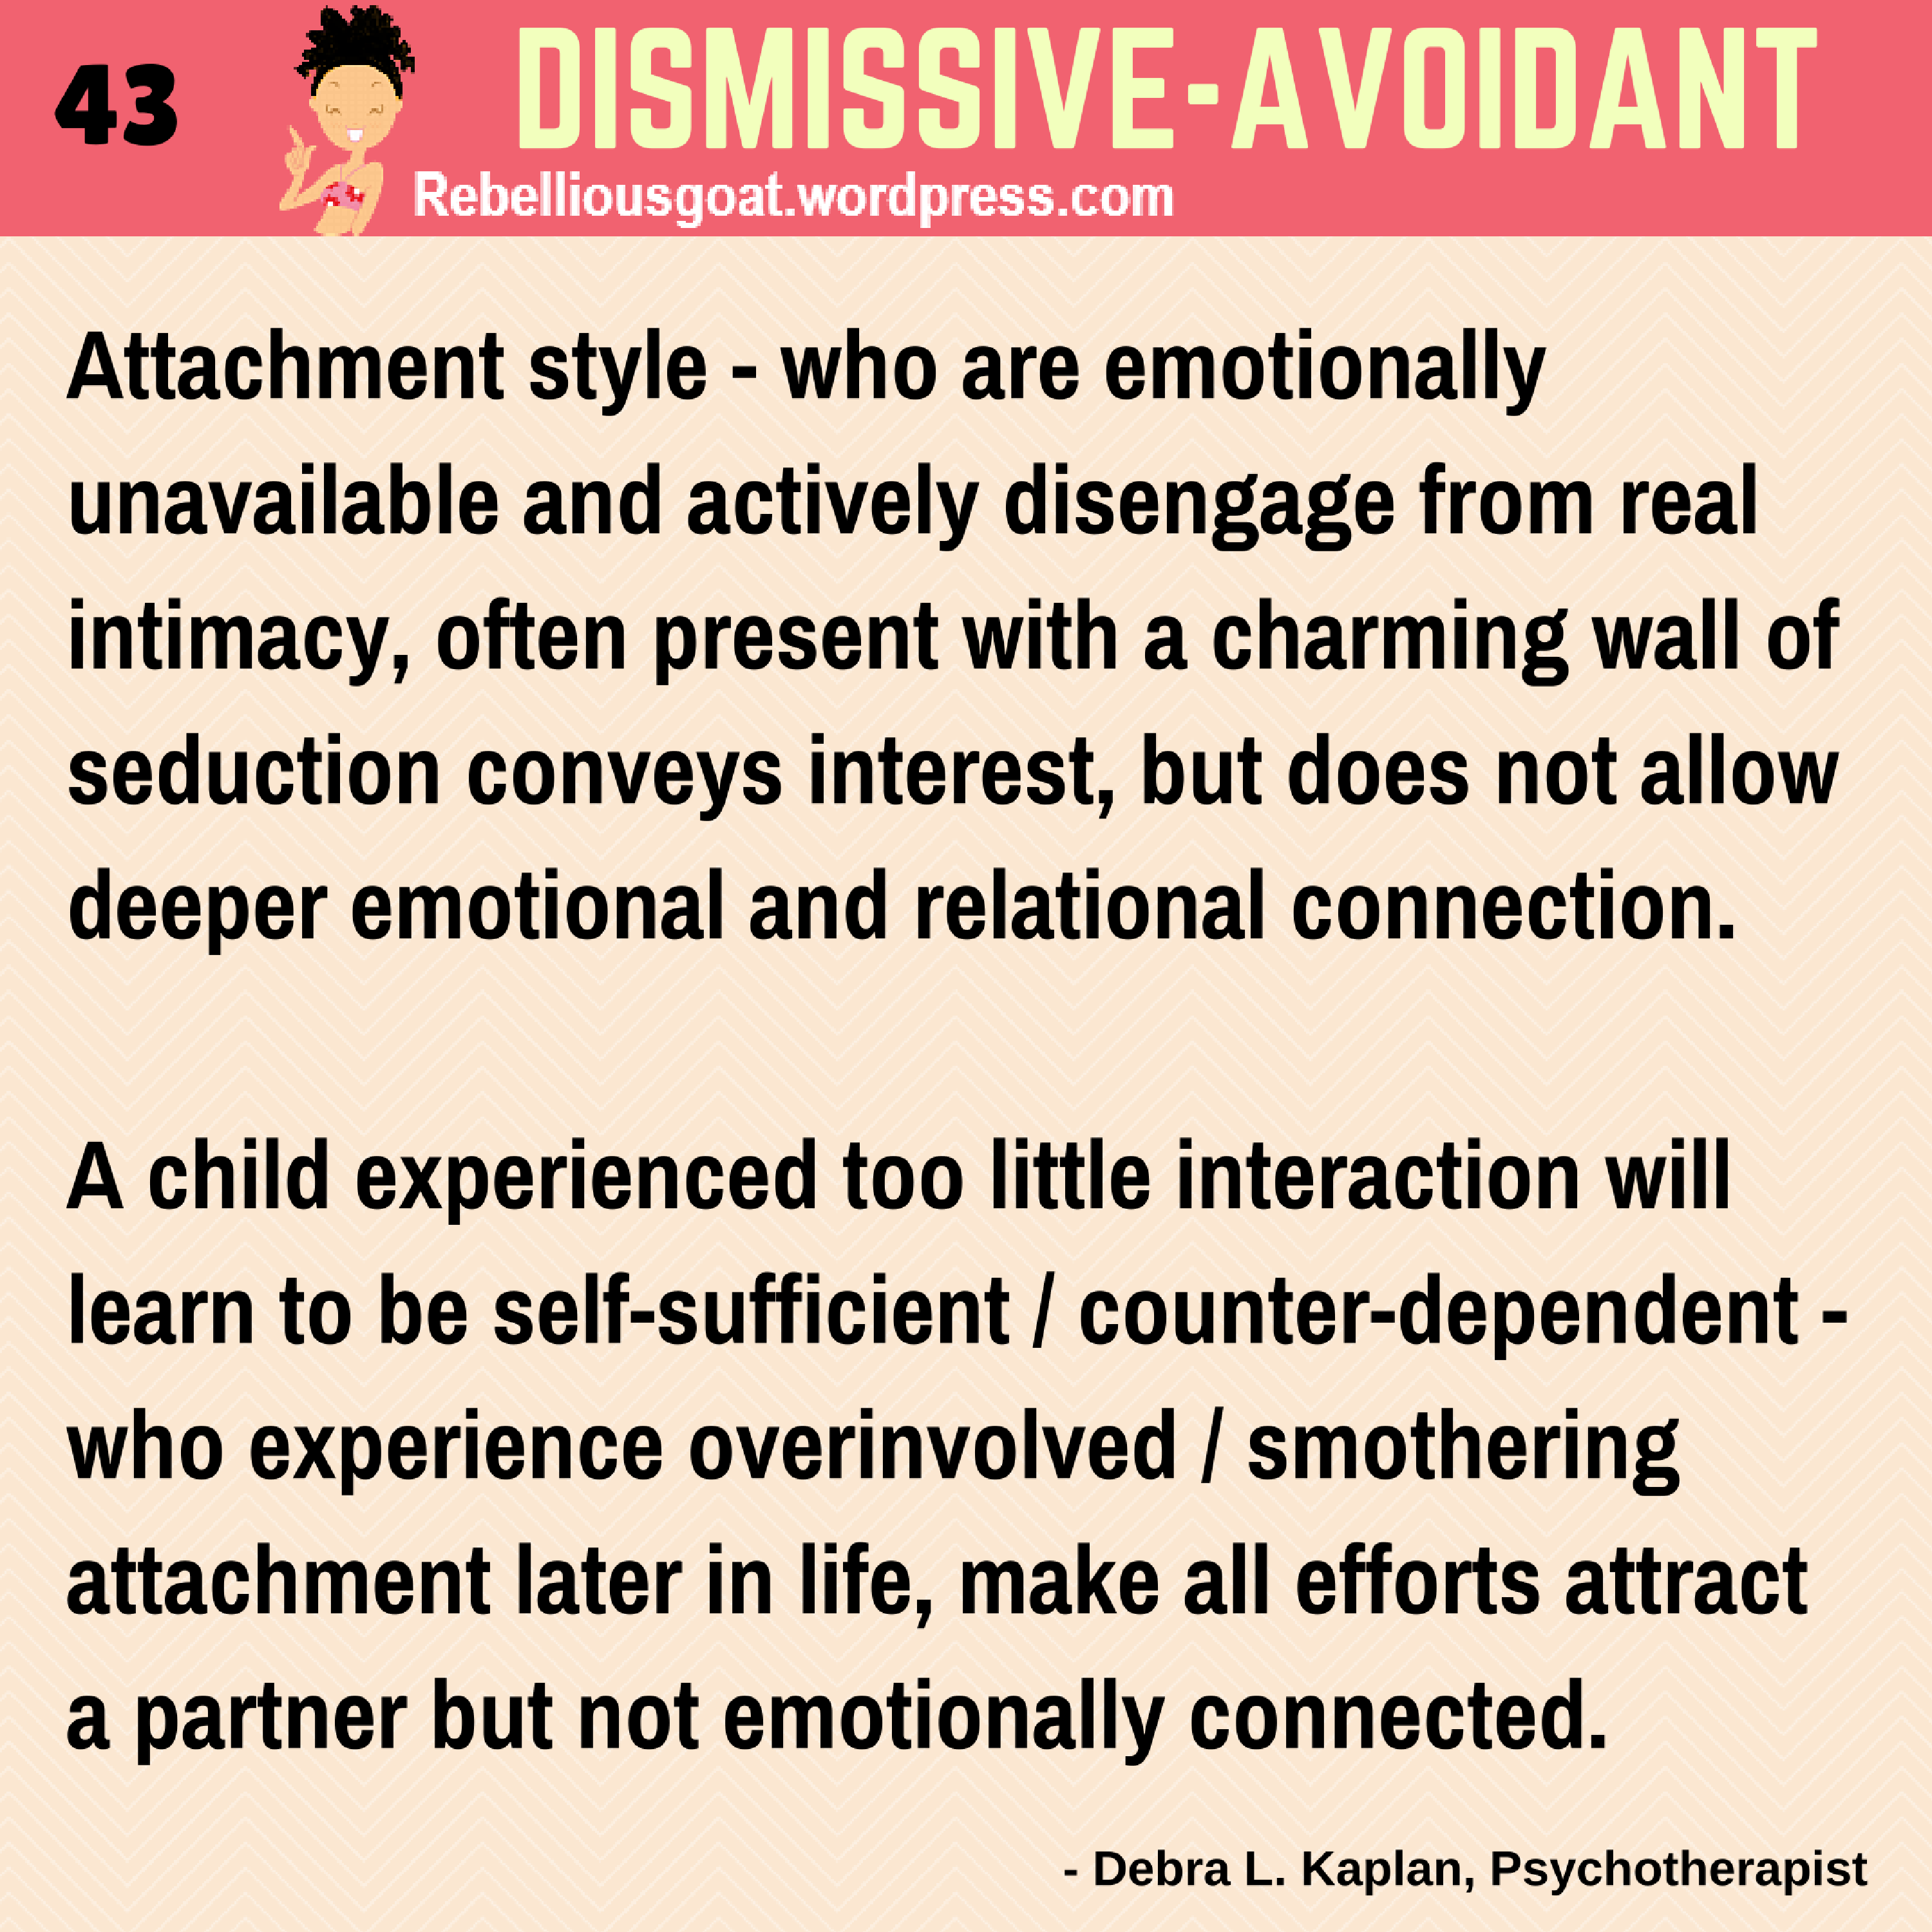 Dismissive avoidant attachment style